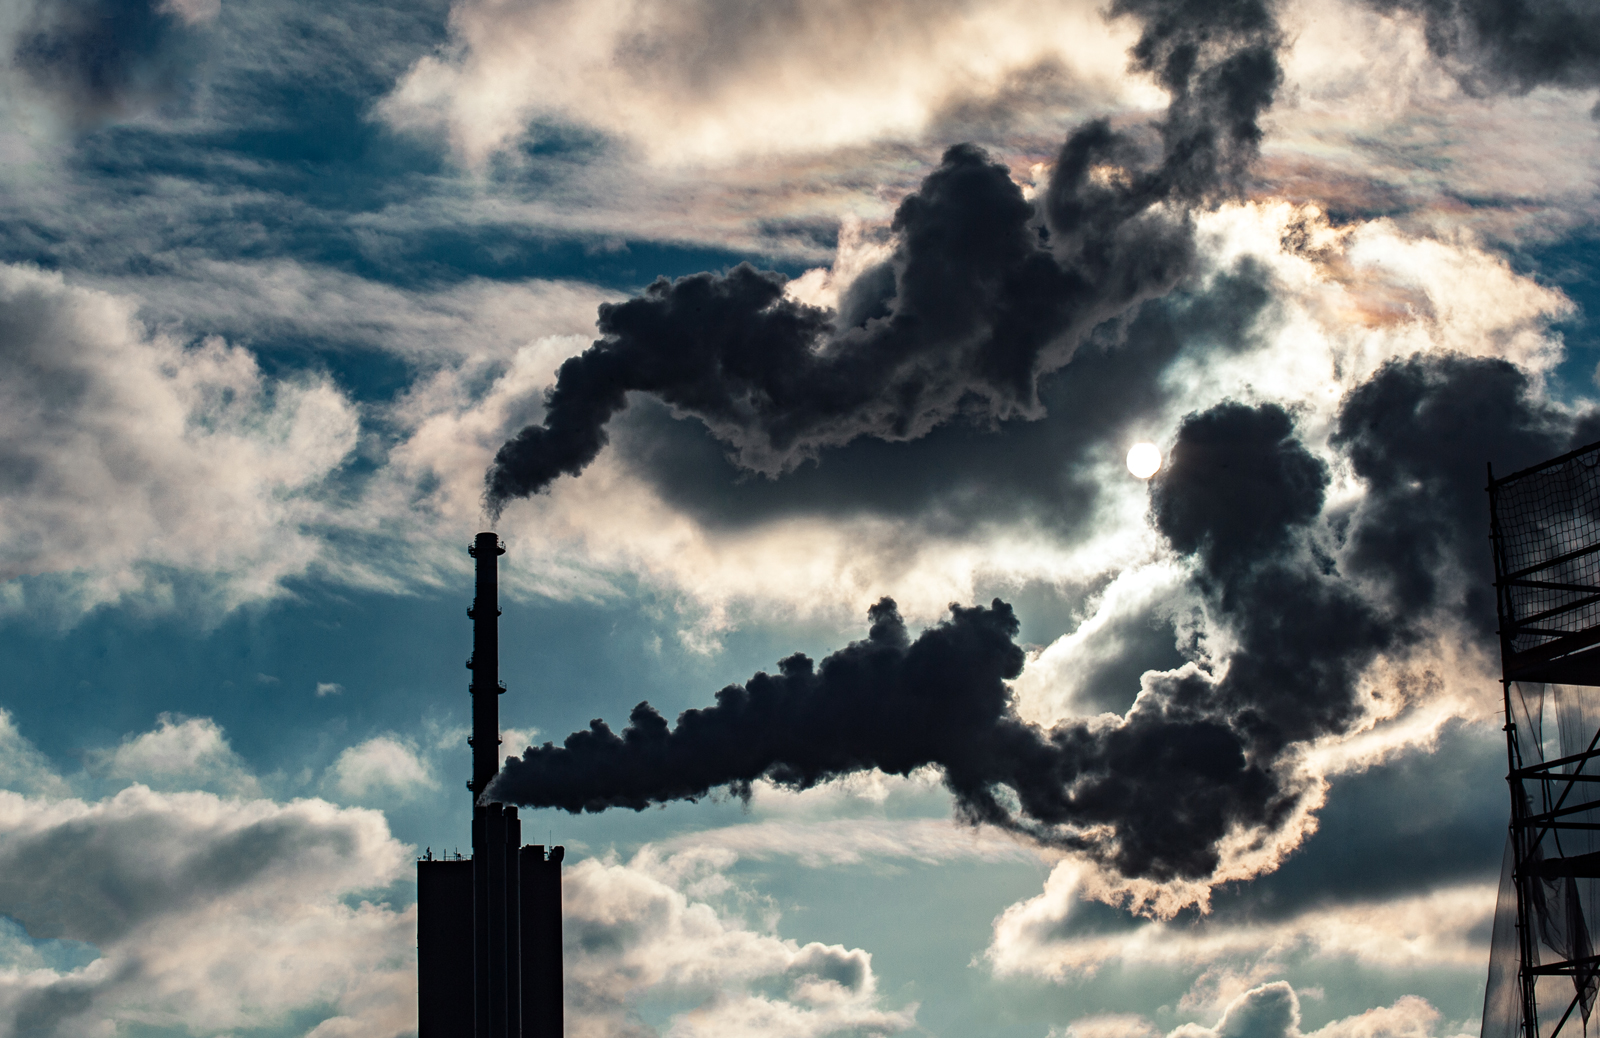 Smoke rises into the sky from a power plant